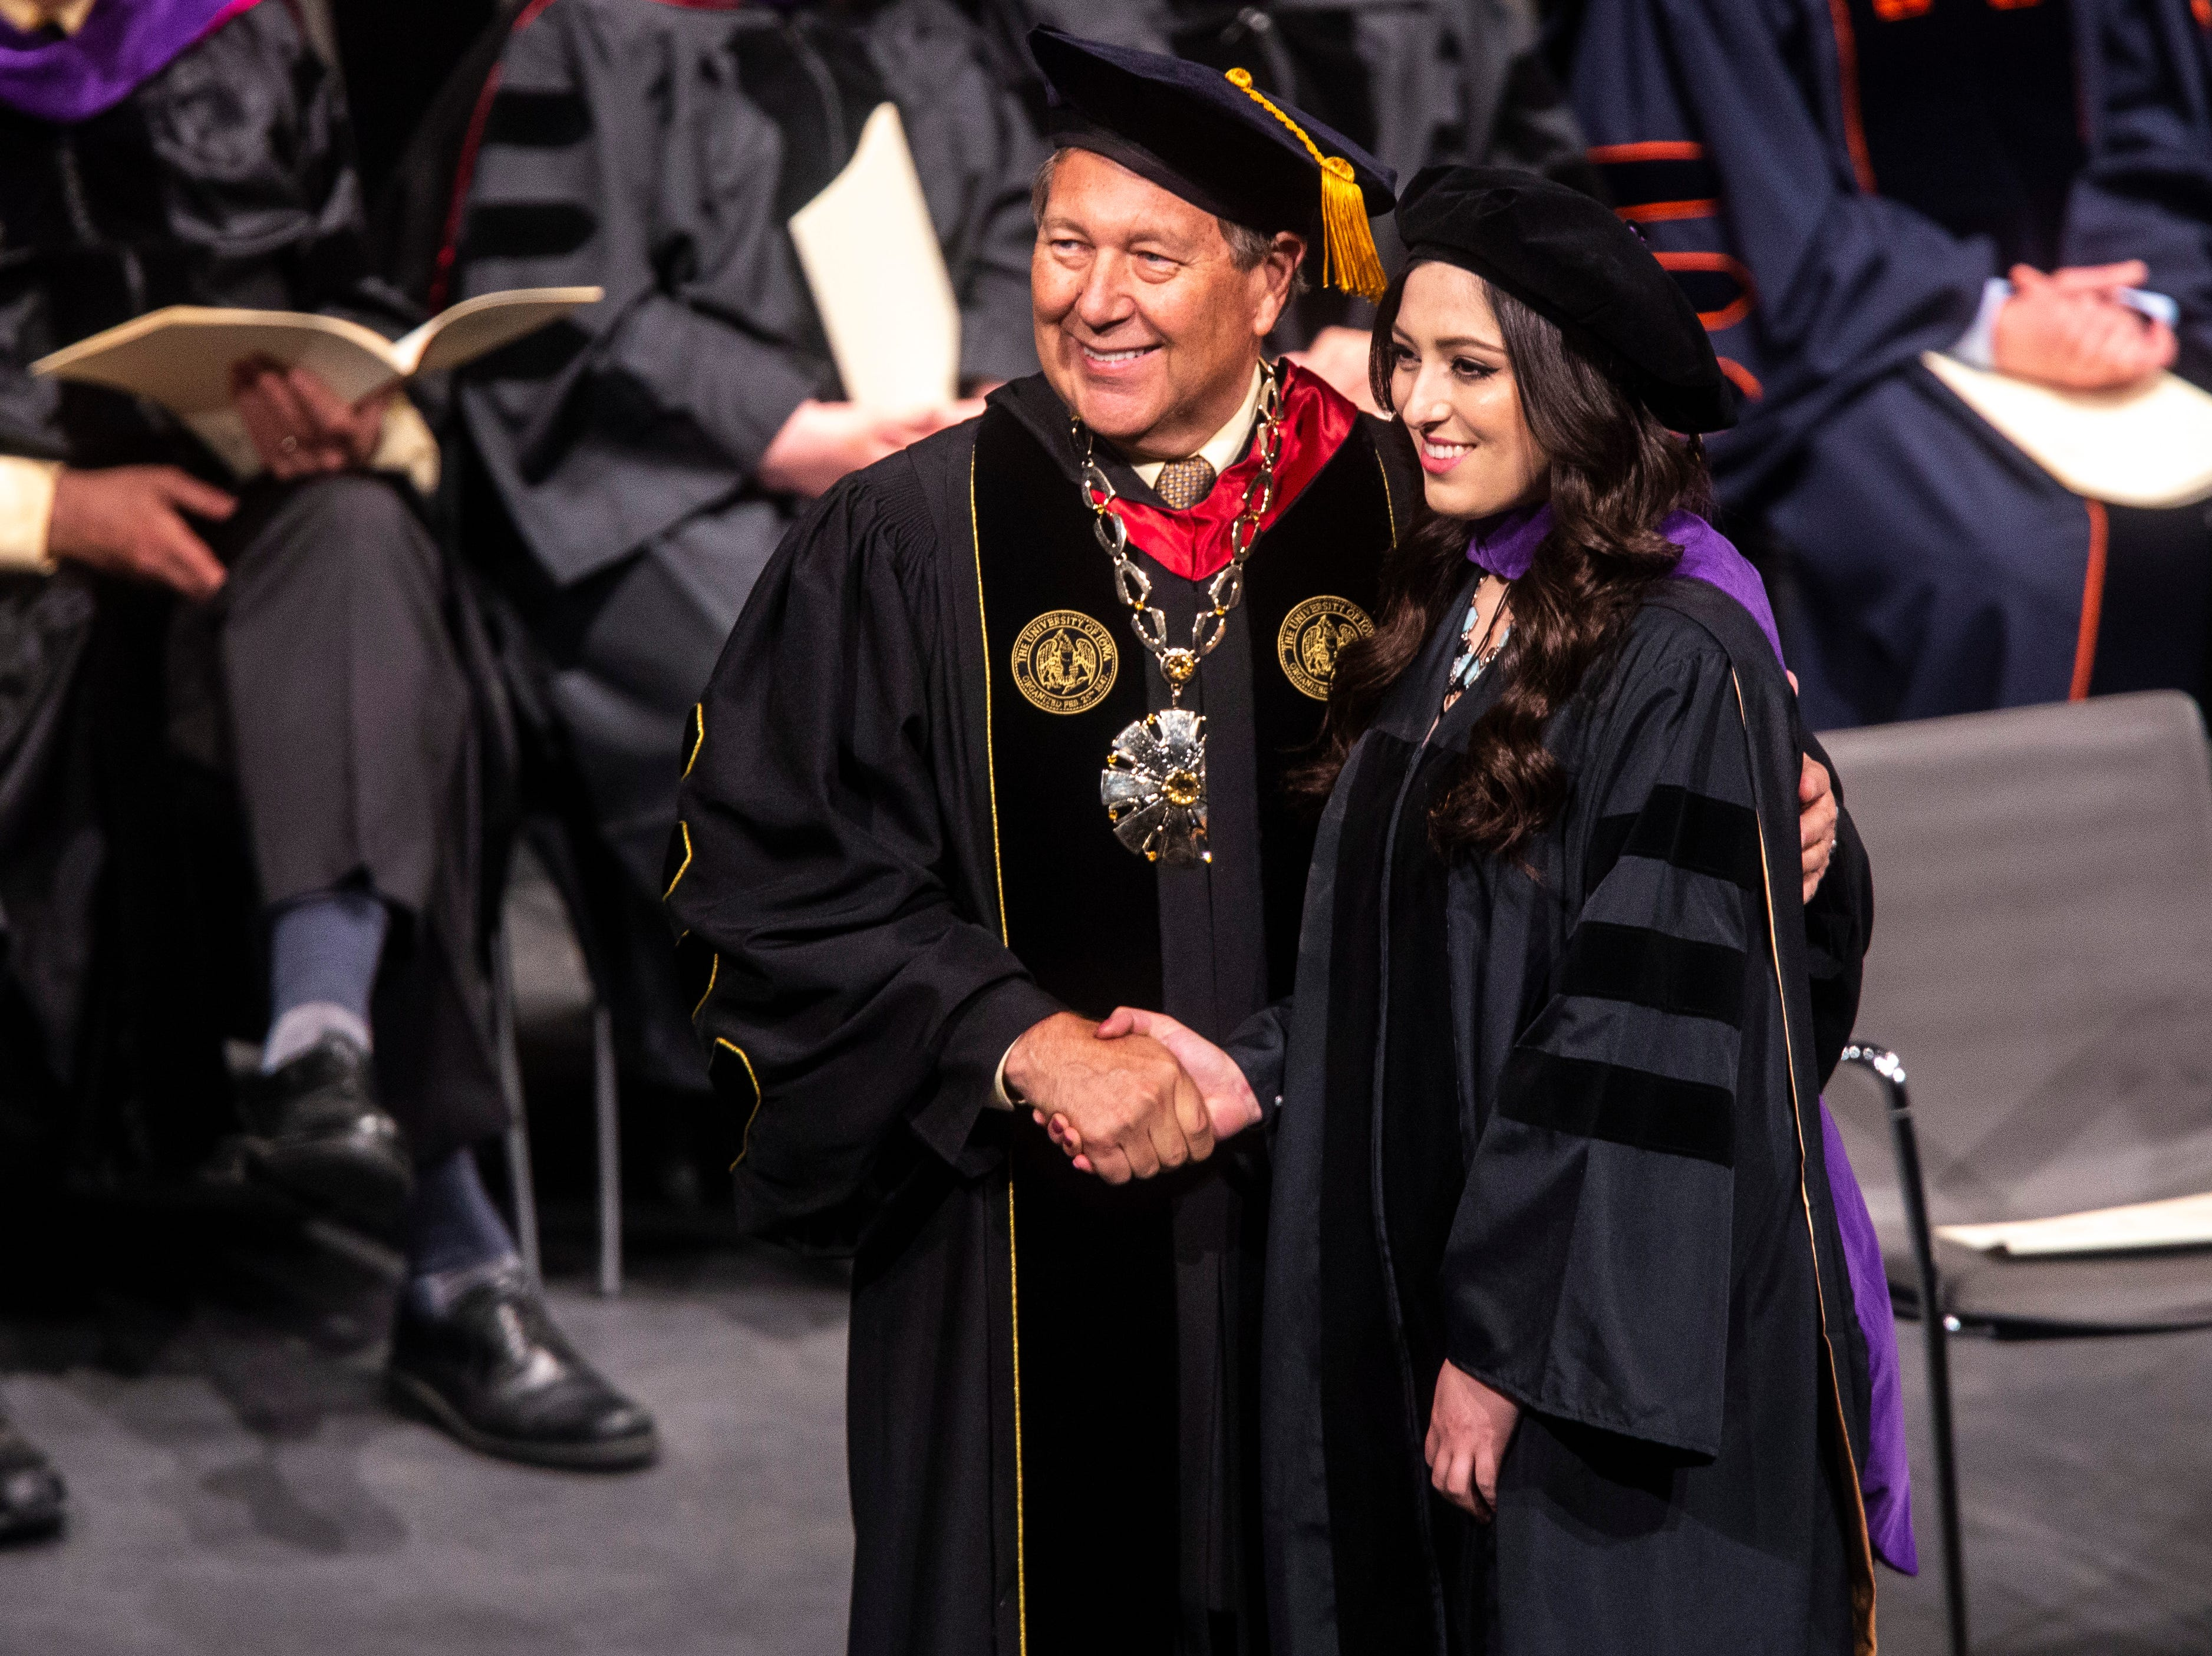 University of Iowa President J. Bruce Harreld poses for a photo with a recent graduate during the College of Law commencement ceremony, Friday, May 10, 2019, at Hancher Auditorium on the University of Iowa campus in Iowa City, Iowa.